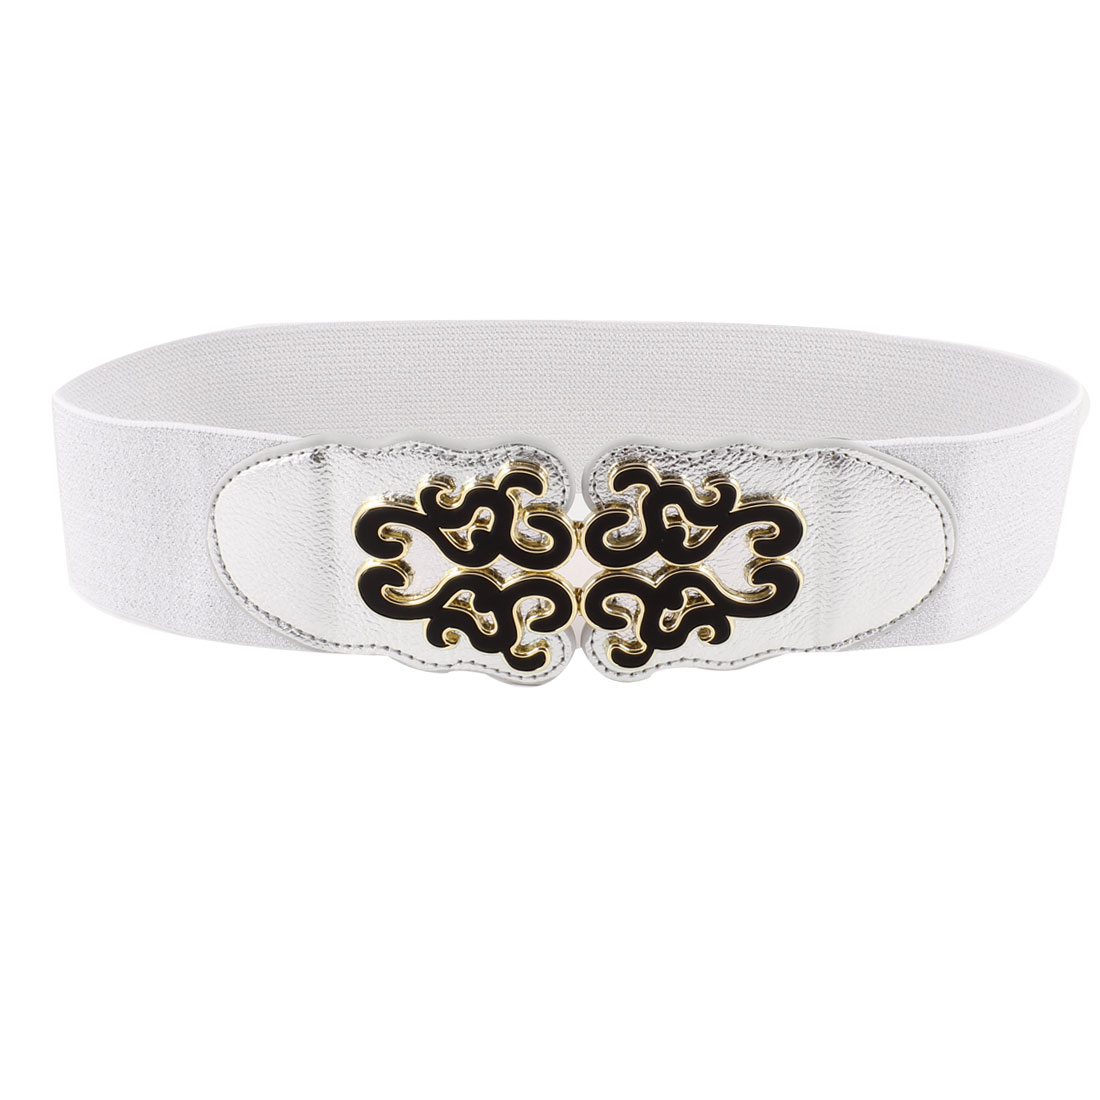 Silver Tone Folk Floral Detail Interlocking Buckle Elastic Waist Belt for Women